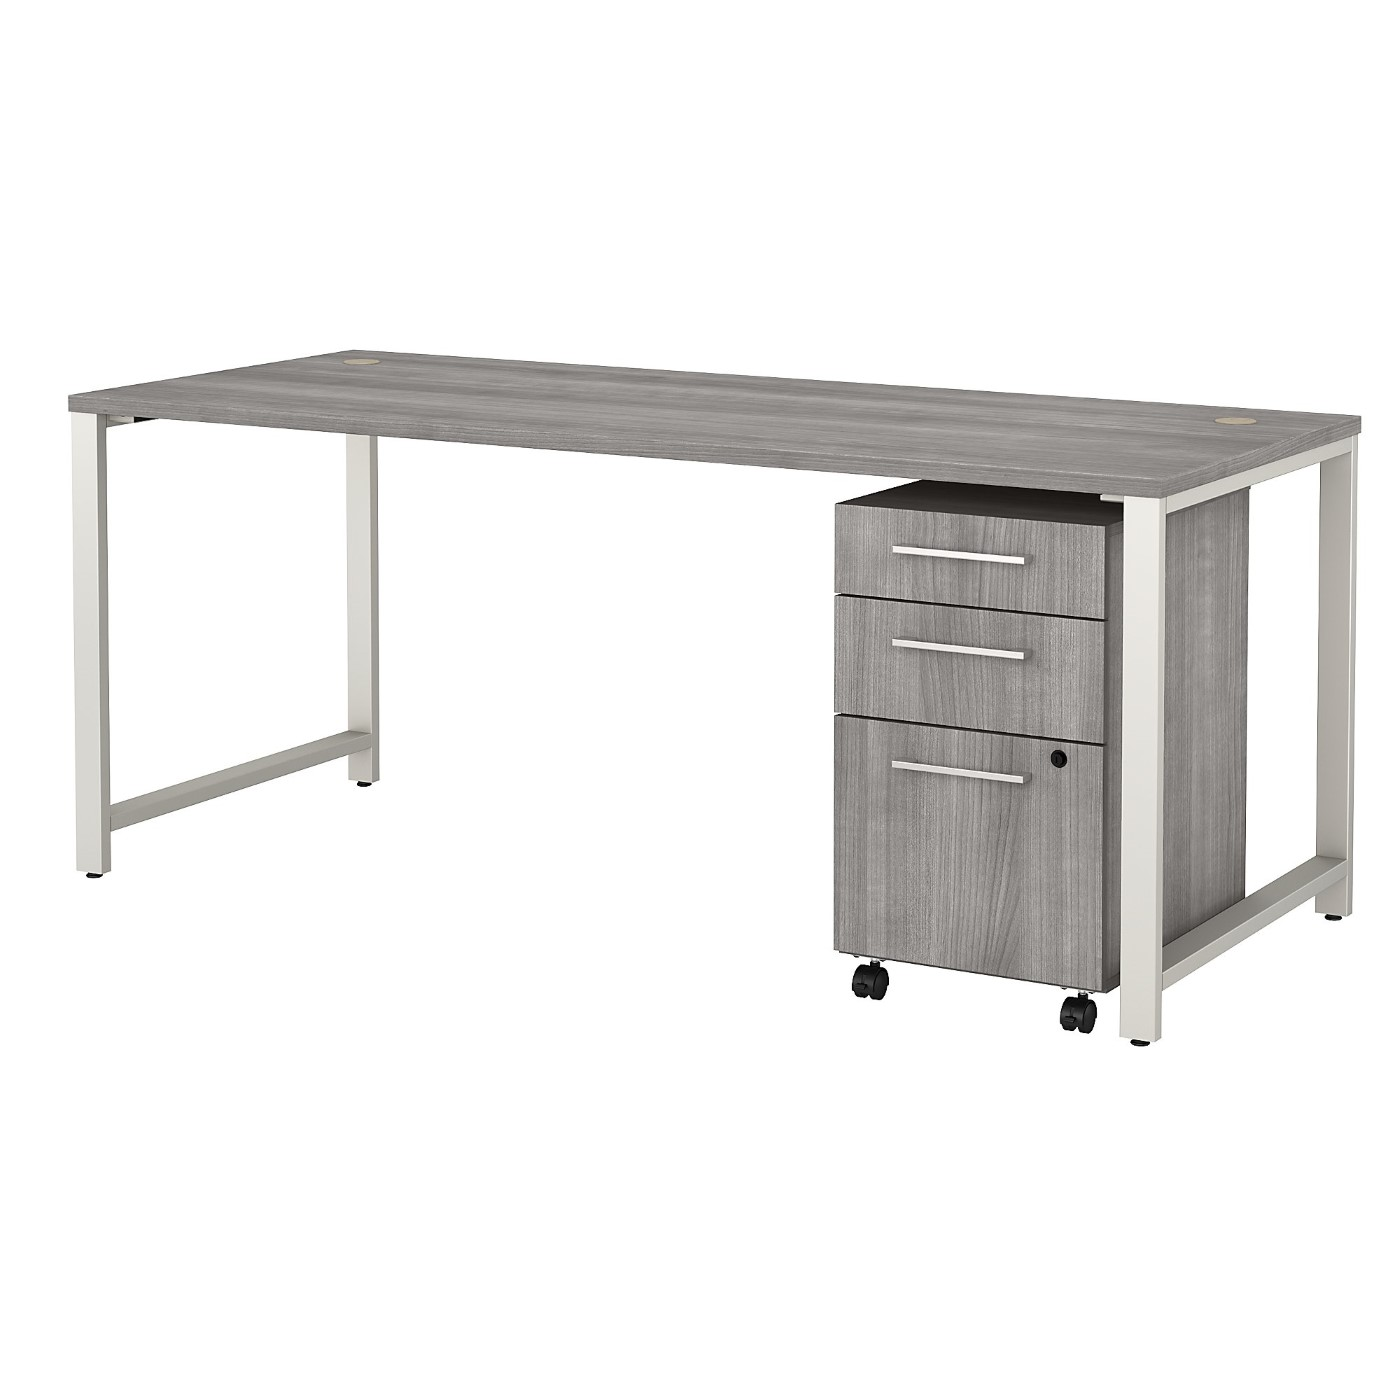 BUSH BUSINESS FURNITURE 400 SERIES 72W X 30D TABLE DESK WITH 3 DRAWER MOBILE FILE CABINET. FREE SHIPPING